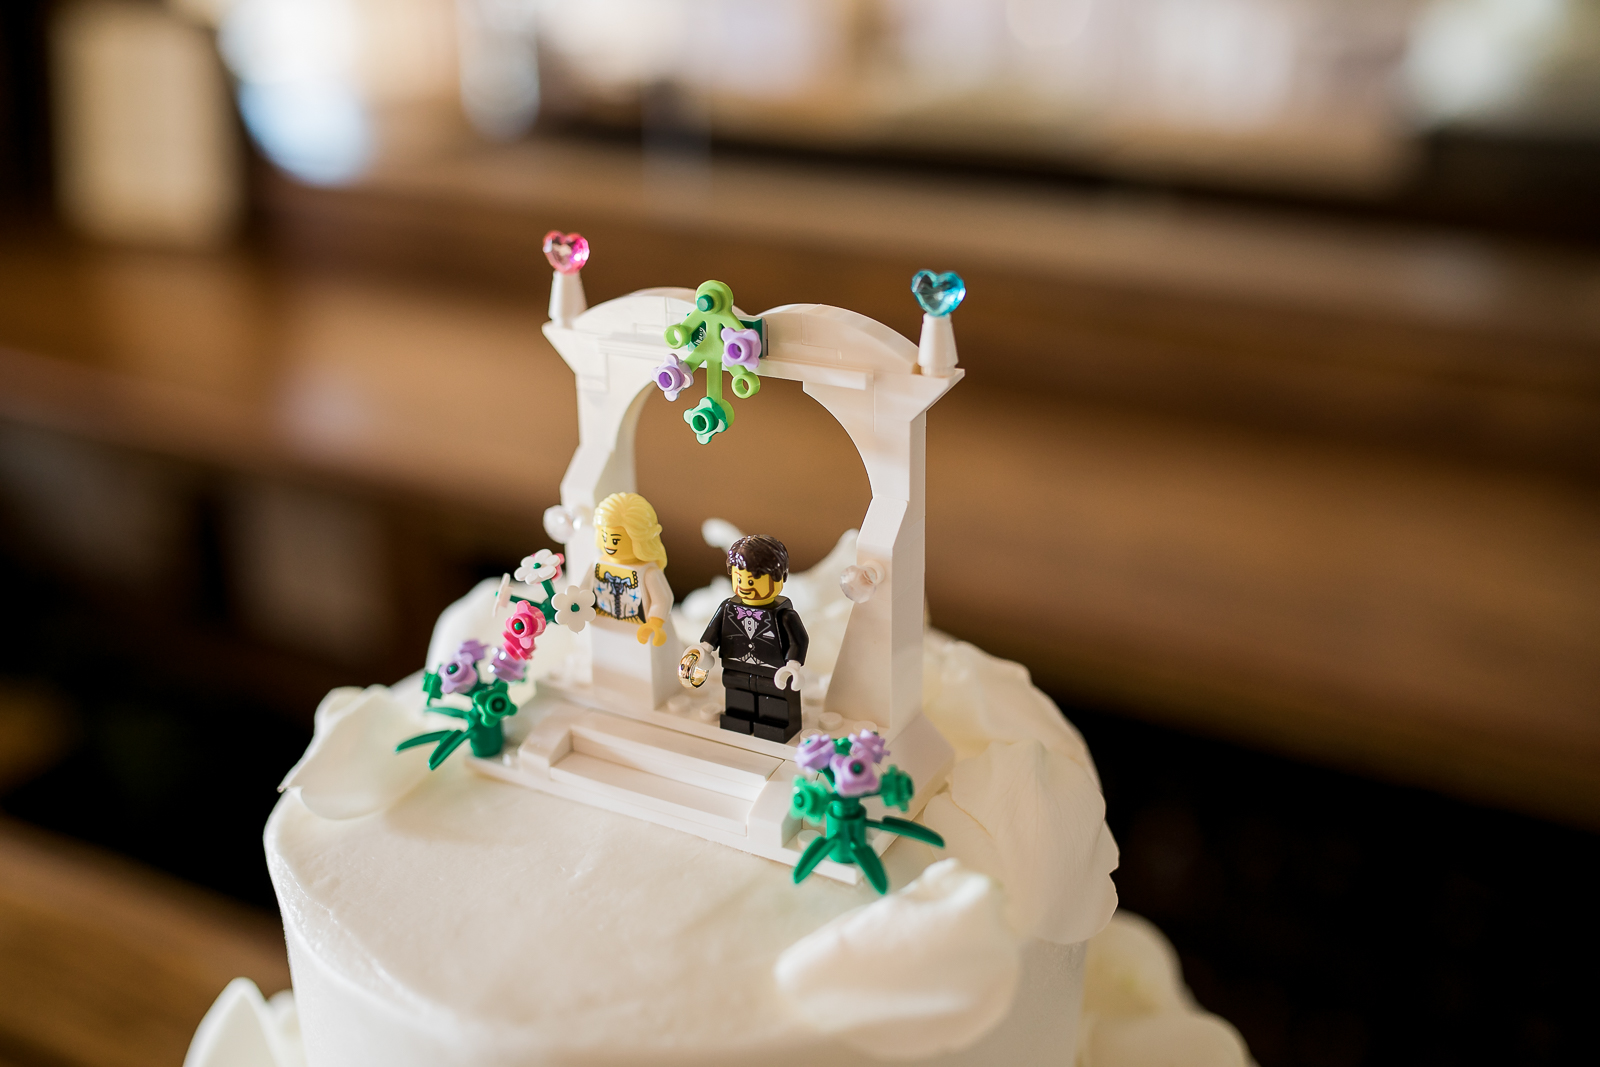 LEGO Cake Topper by Wyoming Wedding Photographer, Megan Lee Photography